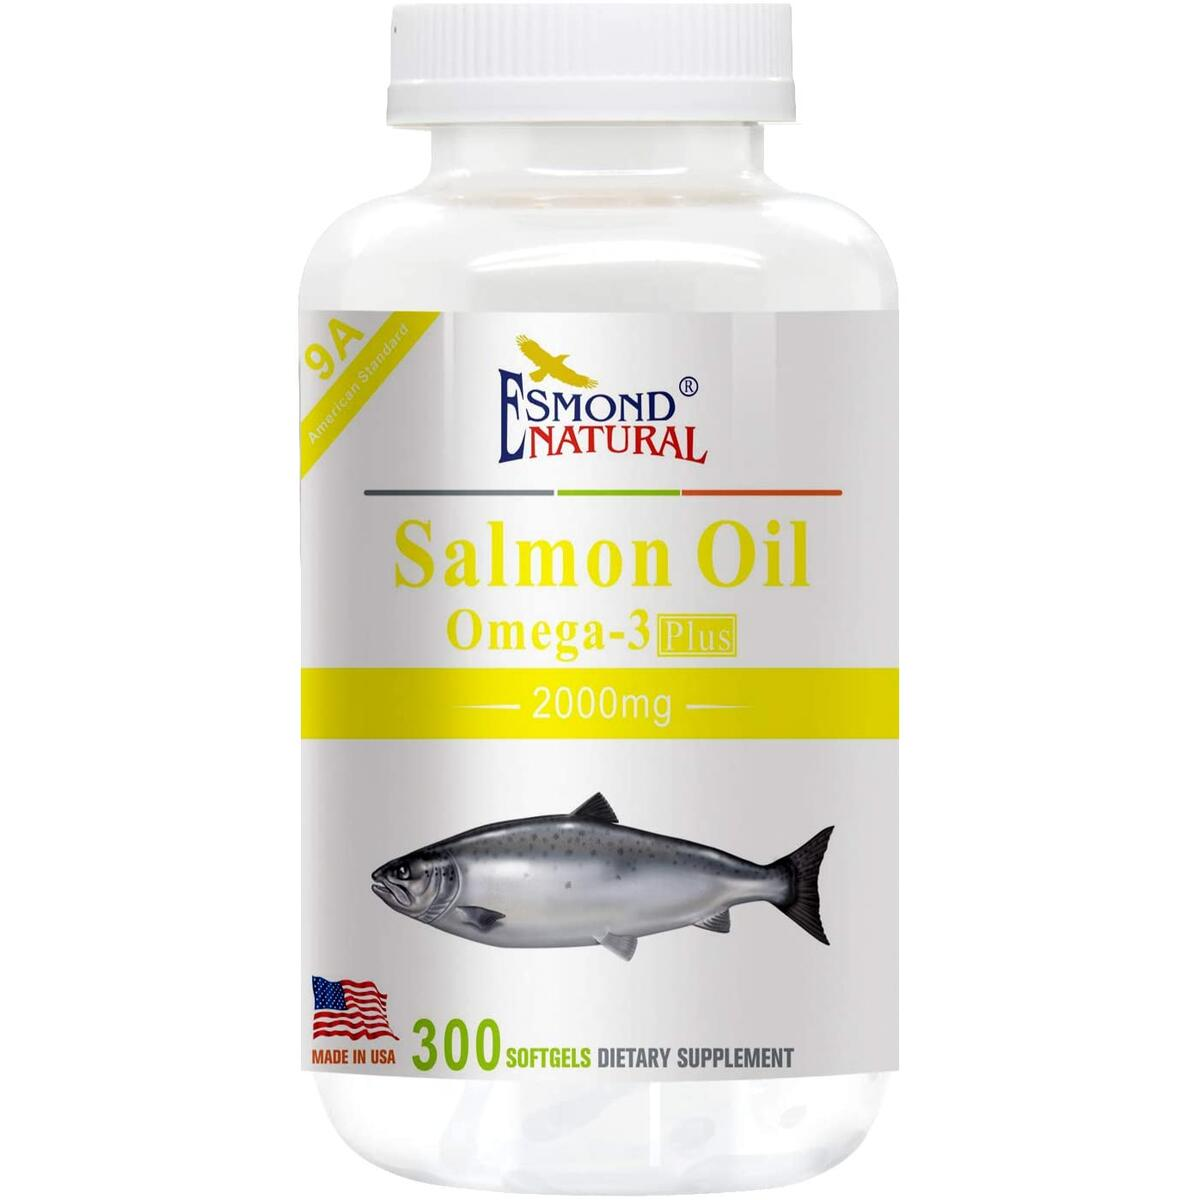 (5 Count, 25% Off) Esmond Natural: Salmon Oil (Omega-3 Plus), GMP, Natural Product Assn Certified, Made in USA-2000mg, 1500 Softgels